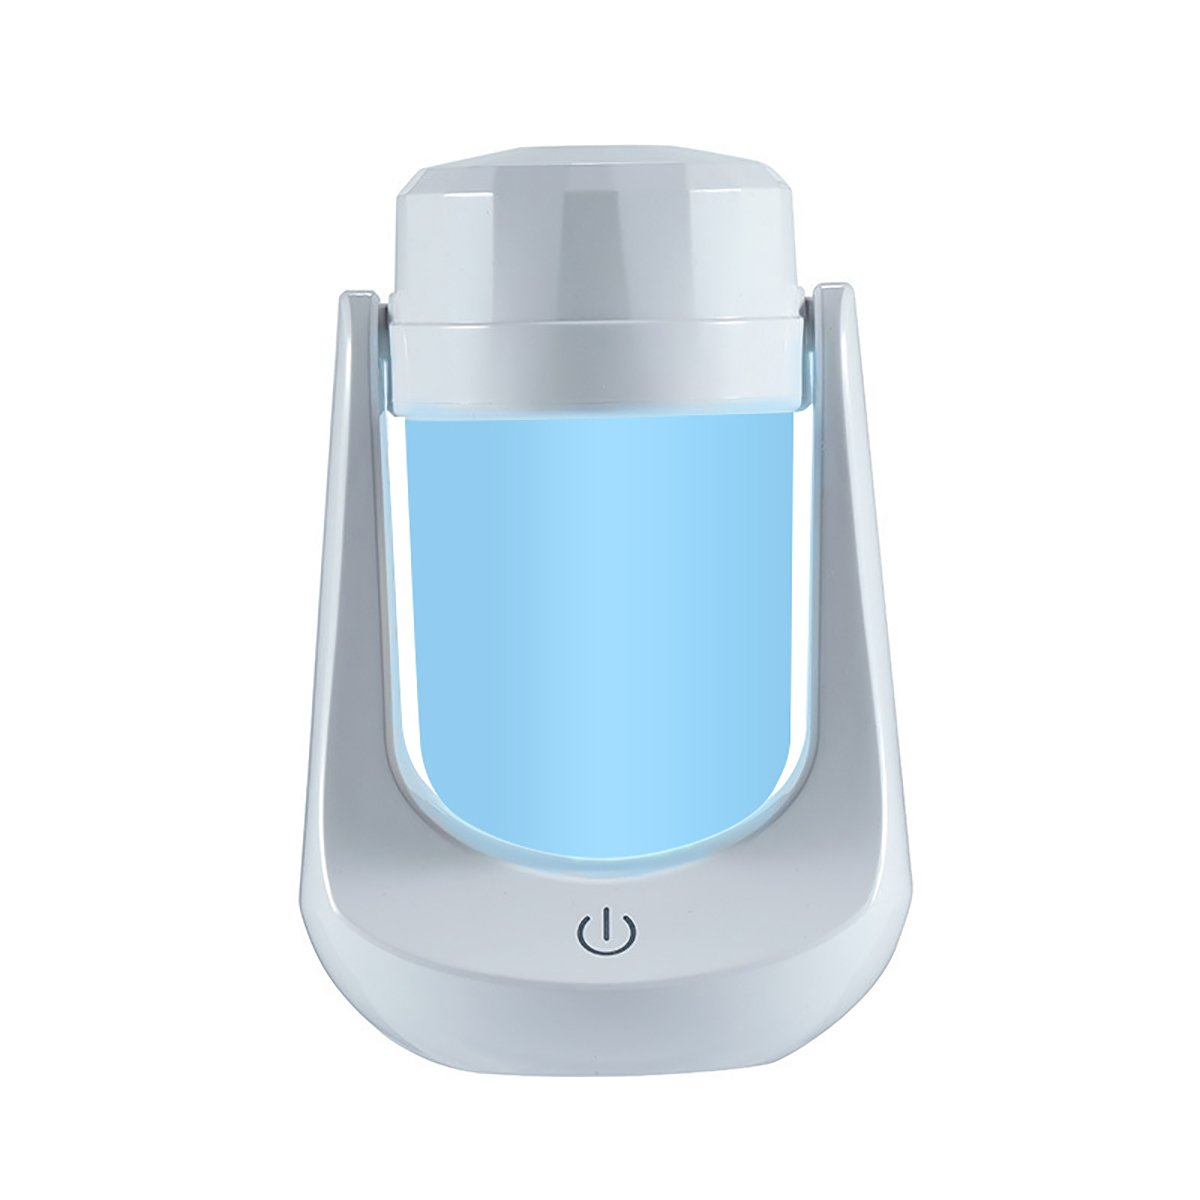 WINOMO USB Mini Humidifier, Cool Mist Essential Oil Diffuser Air Purifier Humidifier with 7 Color Changing LED, Ultra-quiet, Perfect Portable Solution for Home, Office, Car, Yoga (White-Type A) by WINOMO